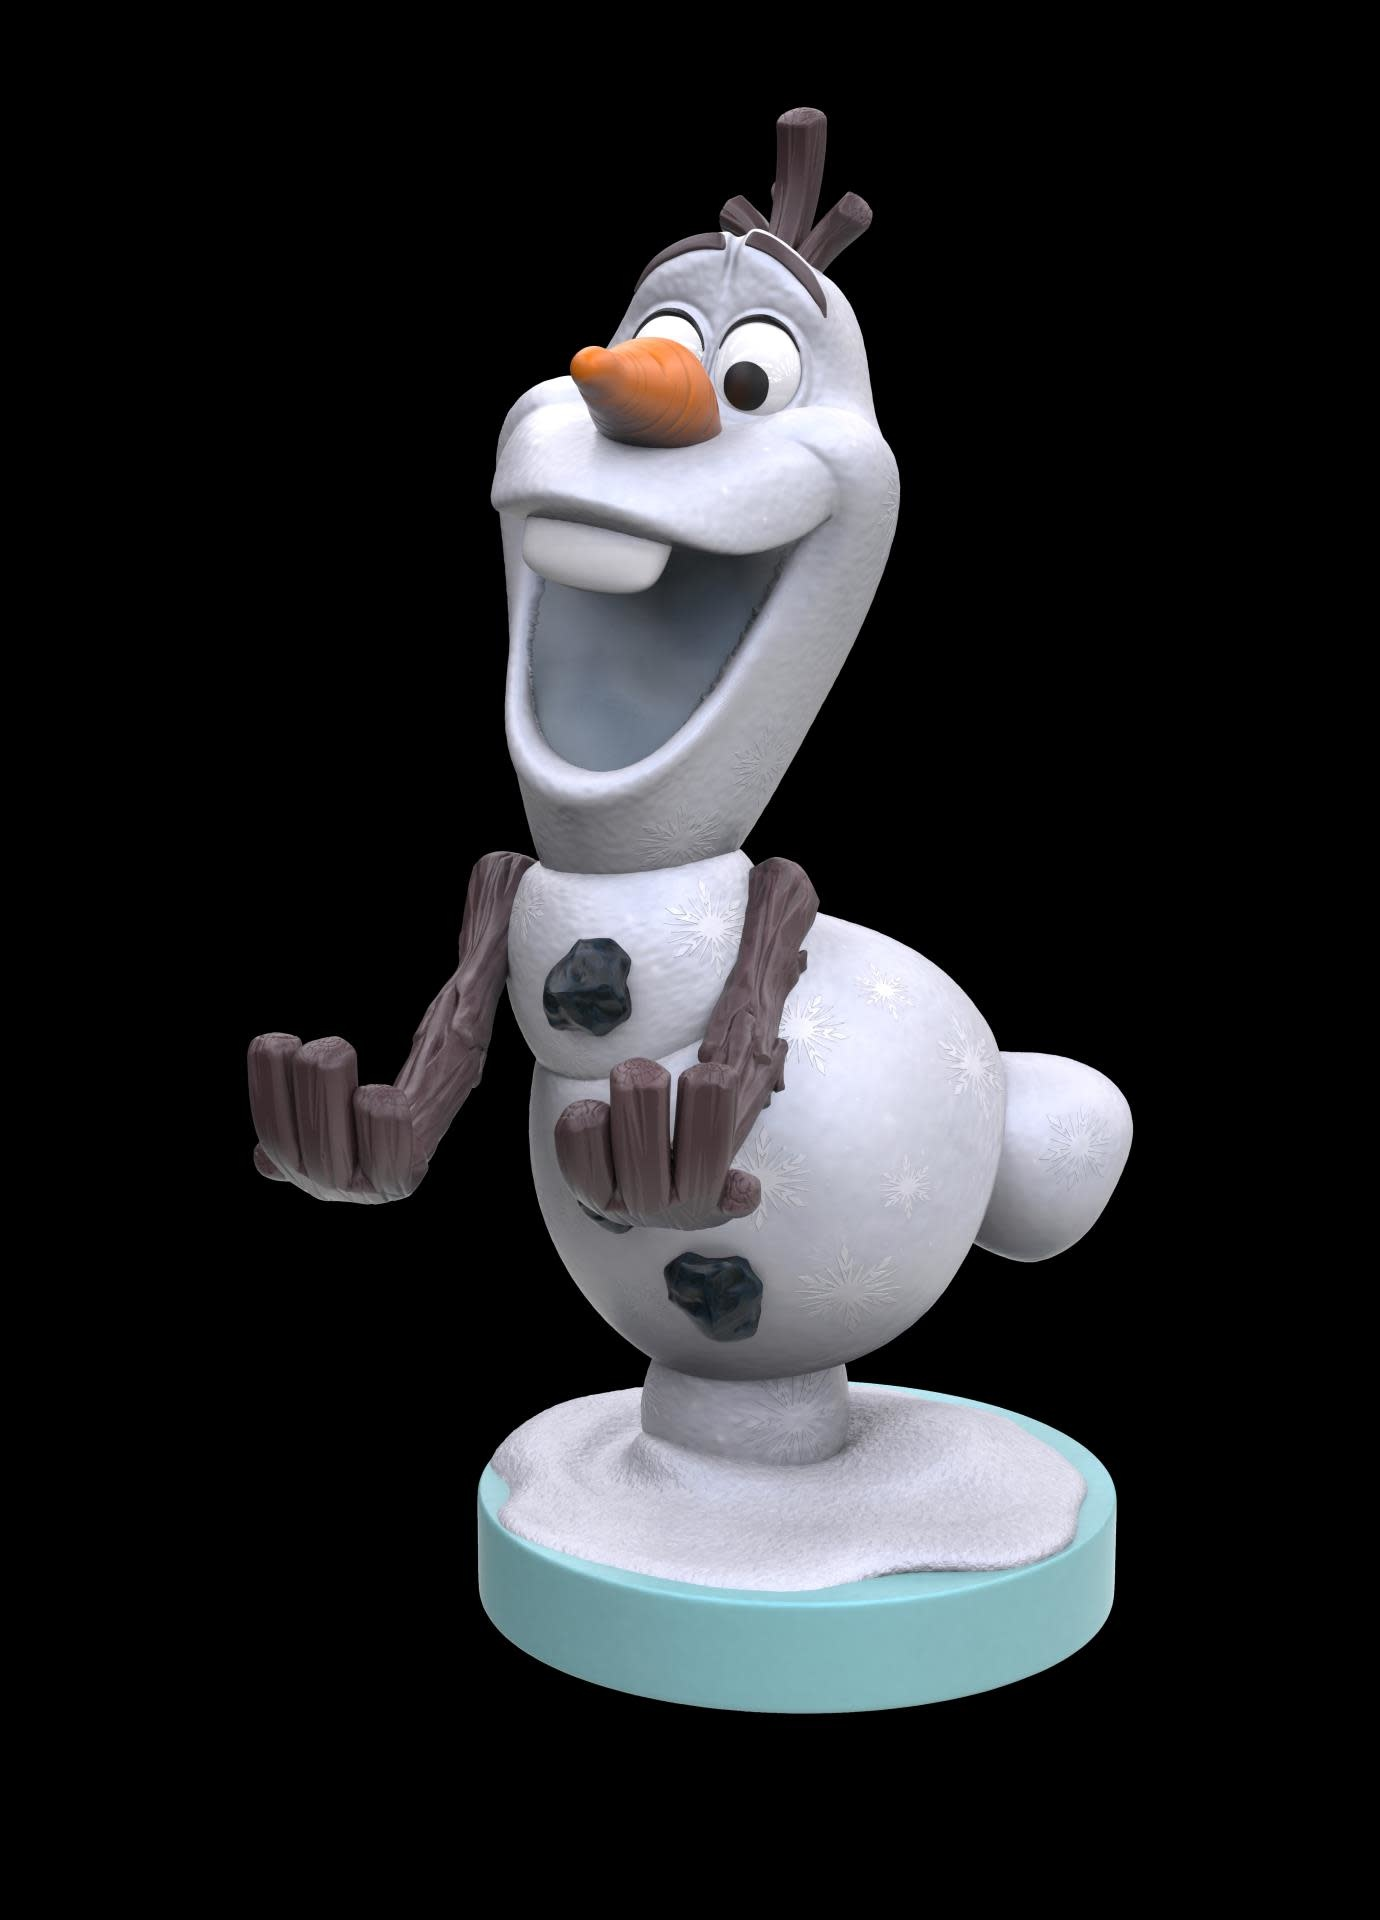 exquise gaming Cable Guy - Disney Frozen Olaf Phone & Controller Holder